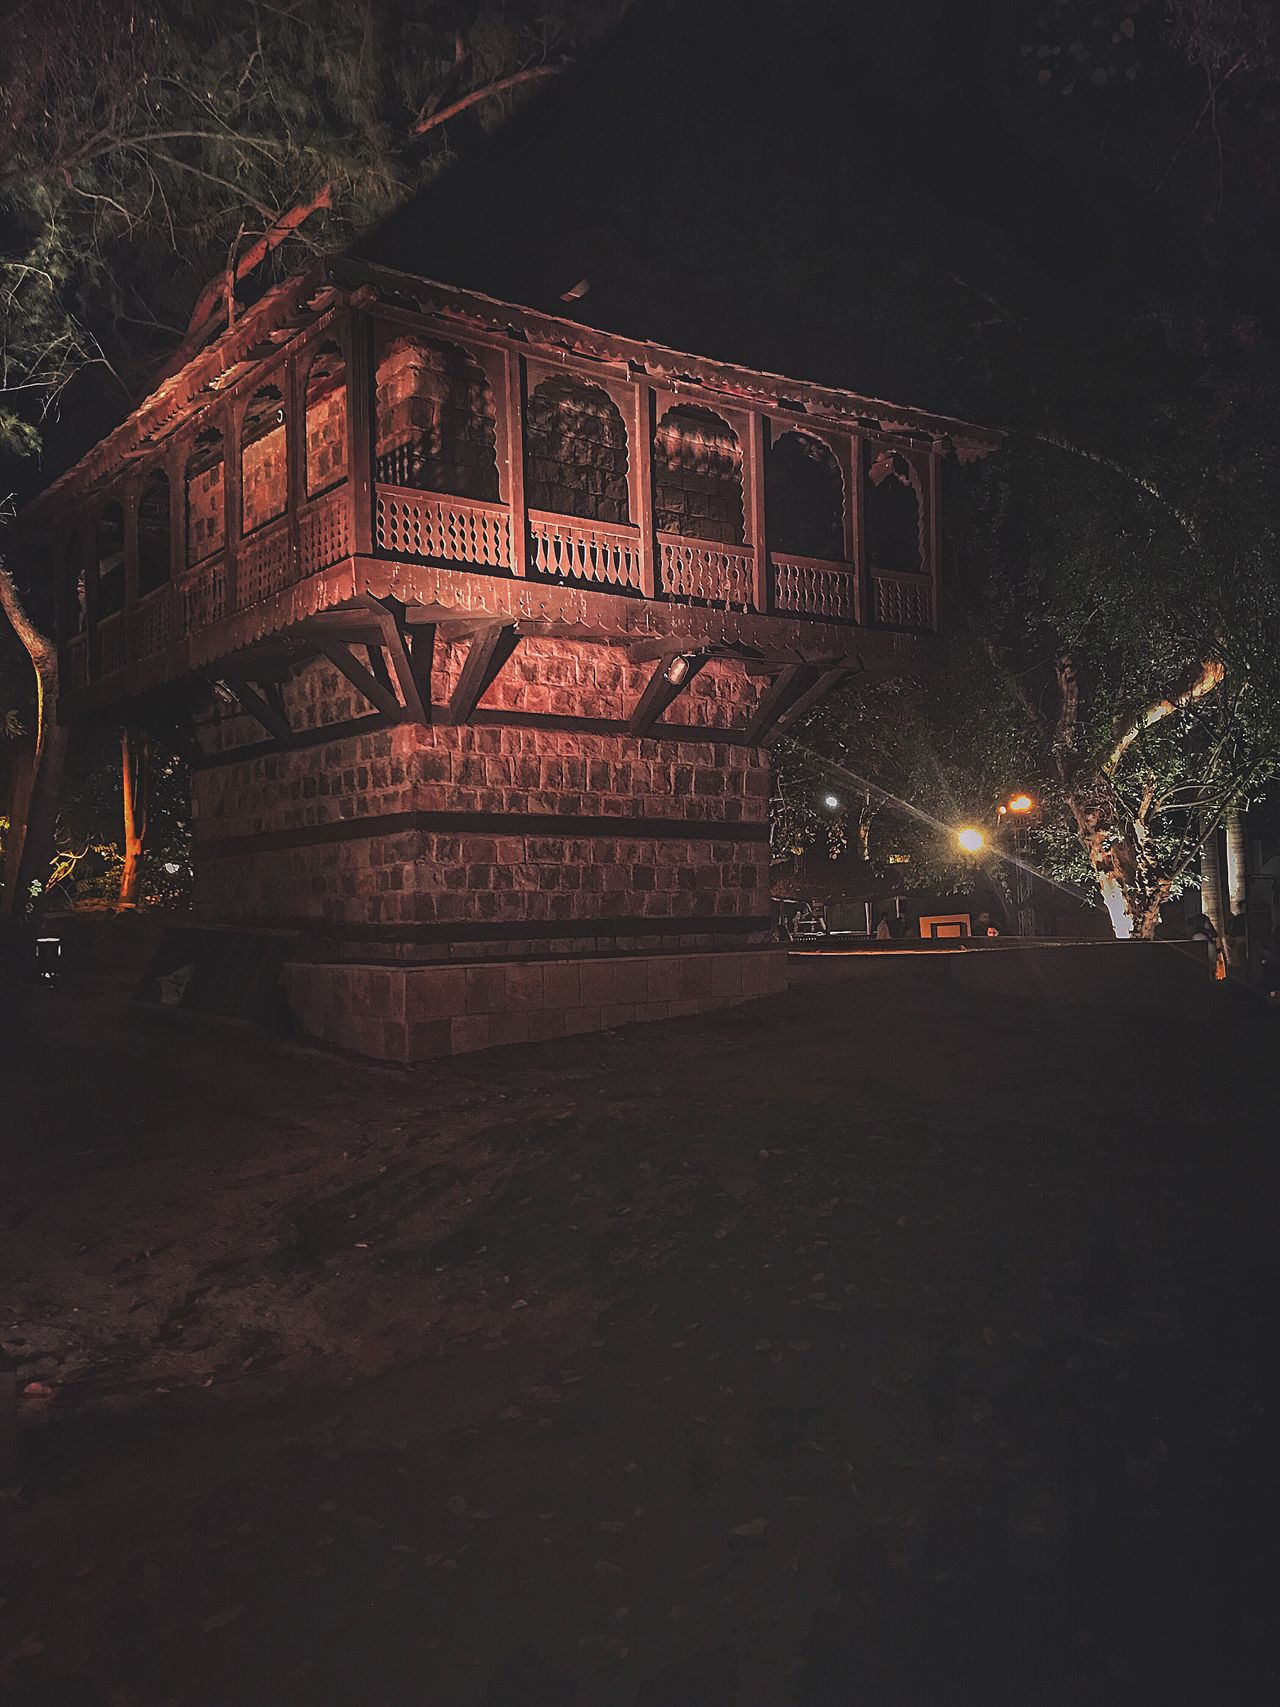 Craft museum | Delhi | India Night Illuminated Mode Of Transport Sky Land Vehicle Outdoors No People Architecture Tree Eyeem Architecture Unique Perspectives Eyeem Market Textures And Surfaces Built Structure City Abandoned